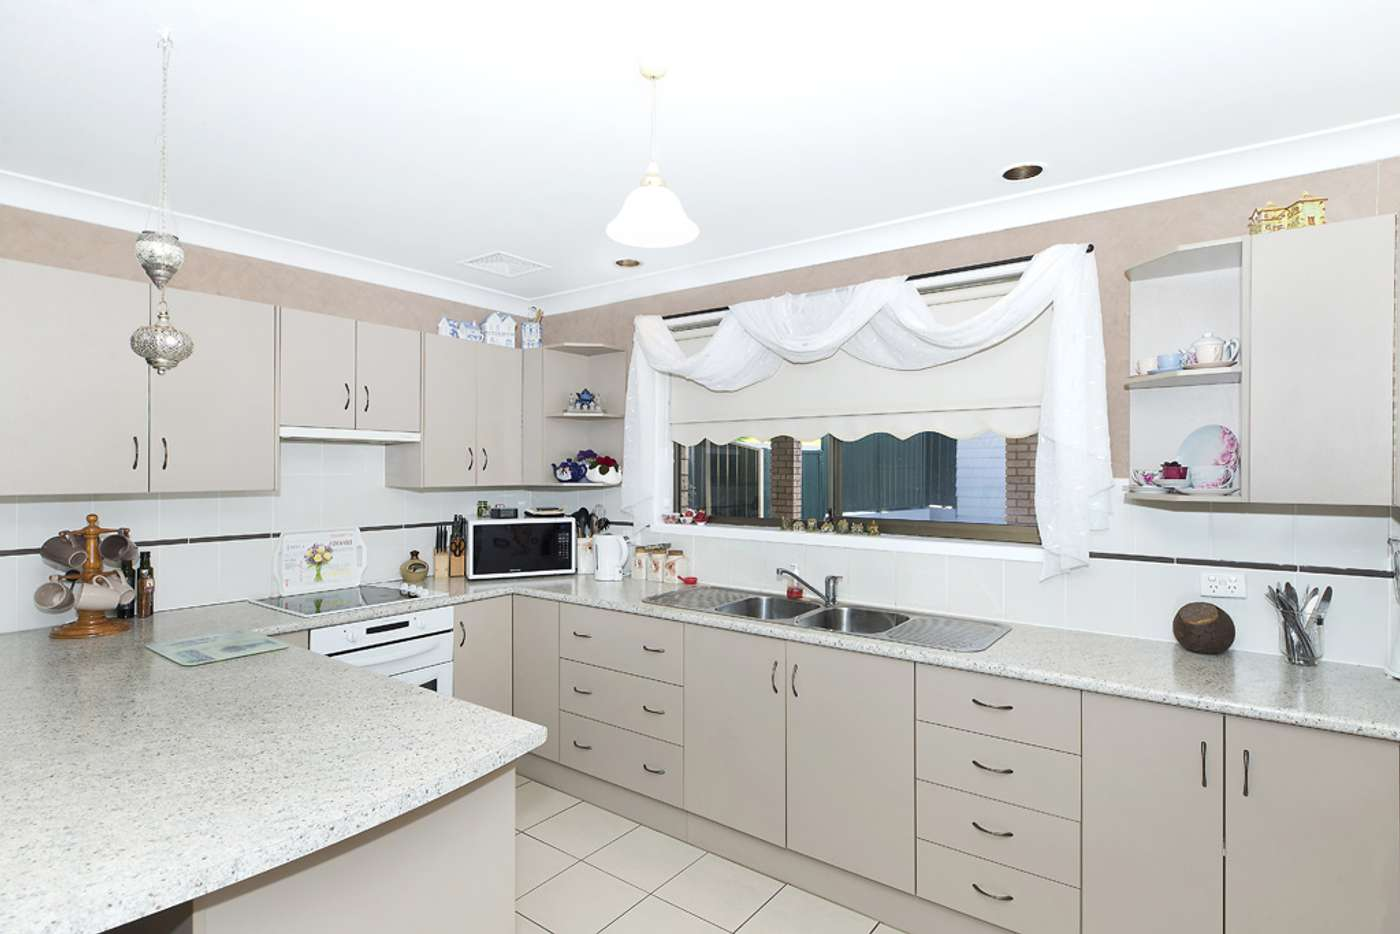 Main view of Homely house listing, 9 Kooringal Close, Rathmines NSW 2283